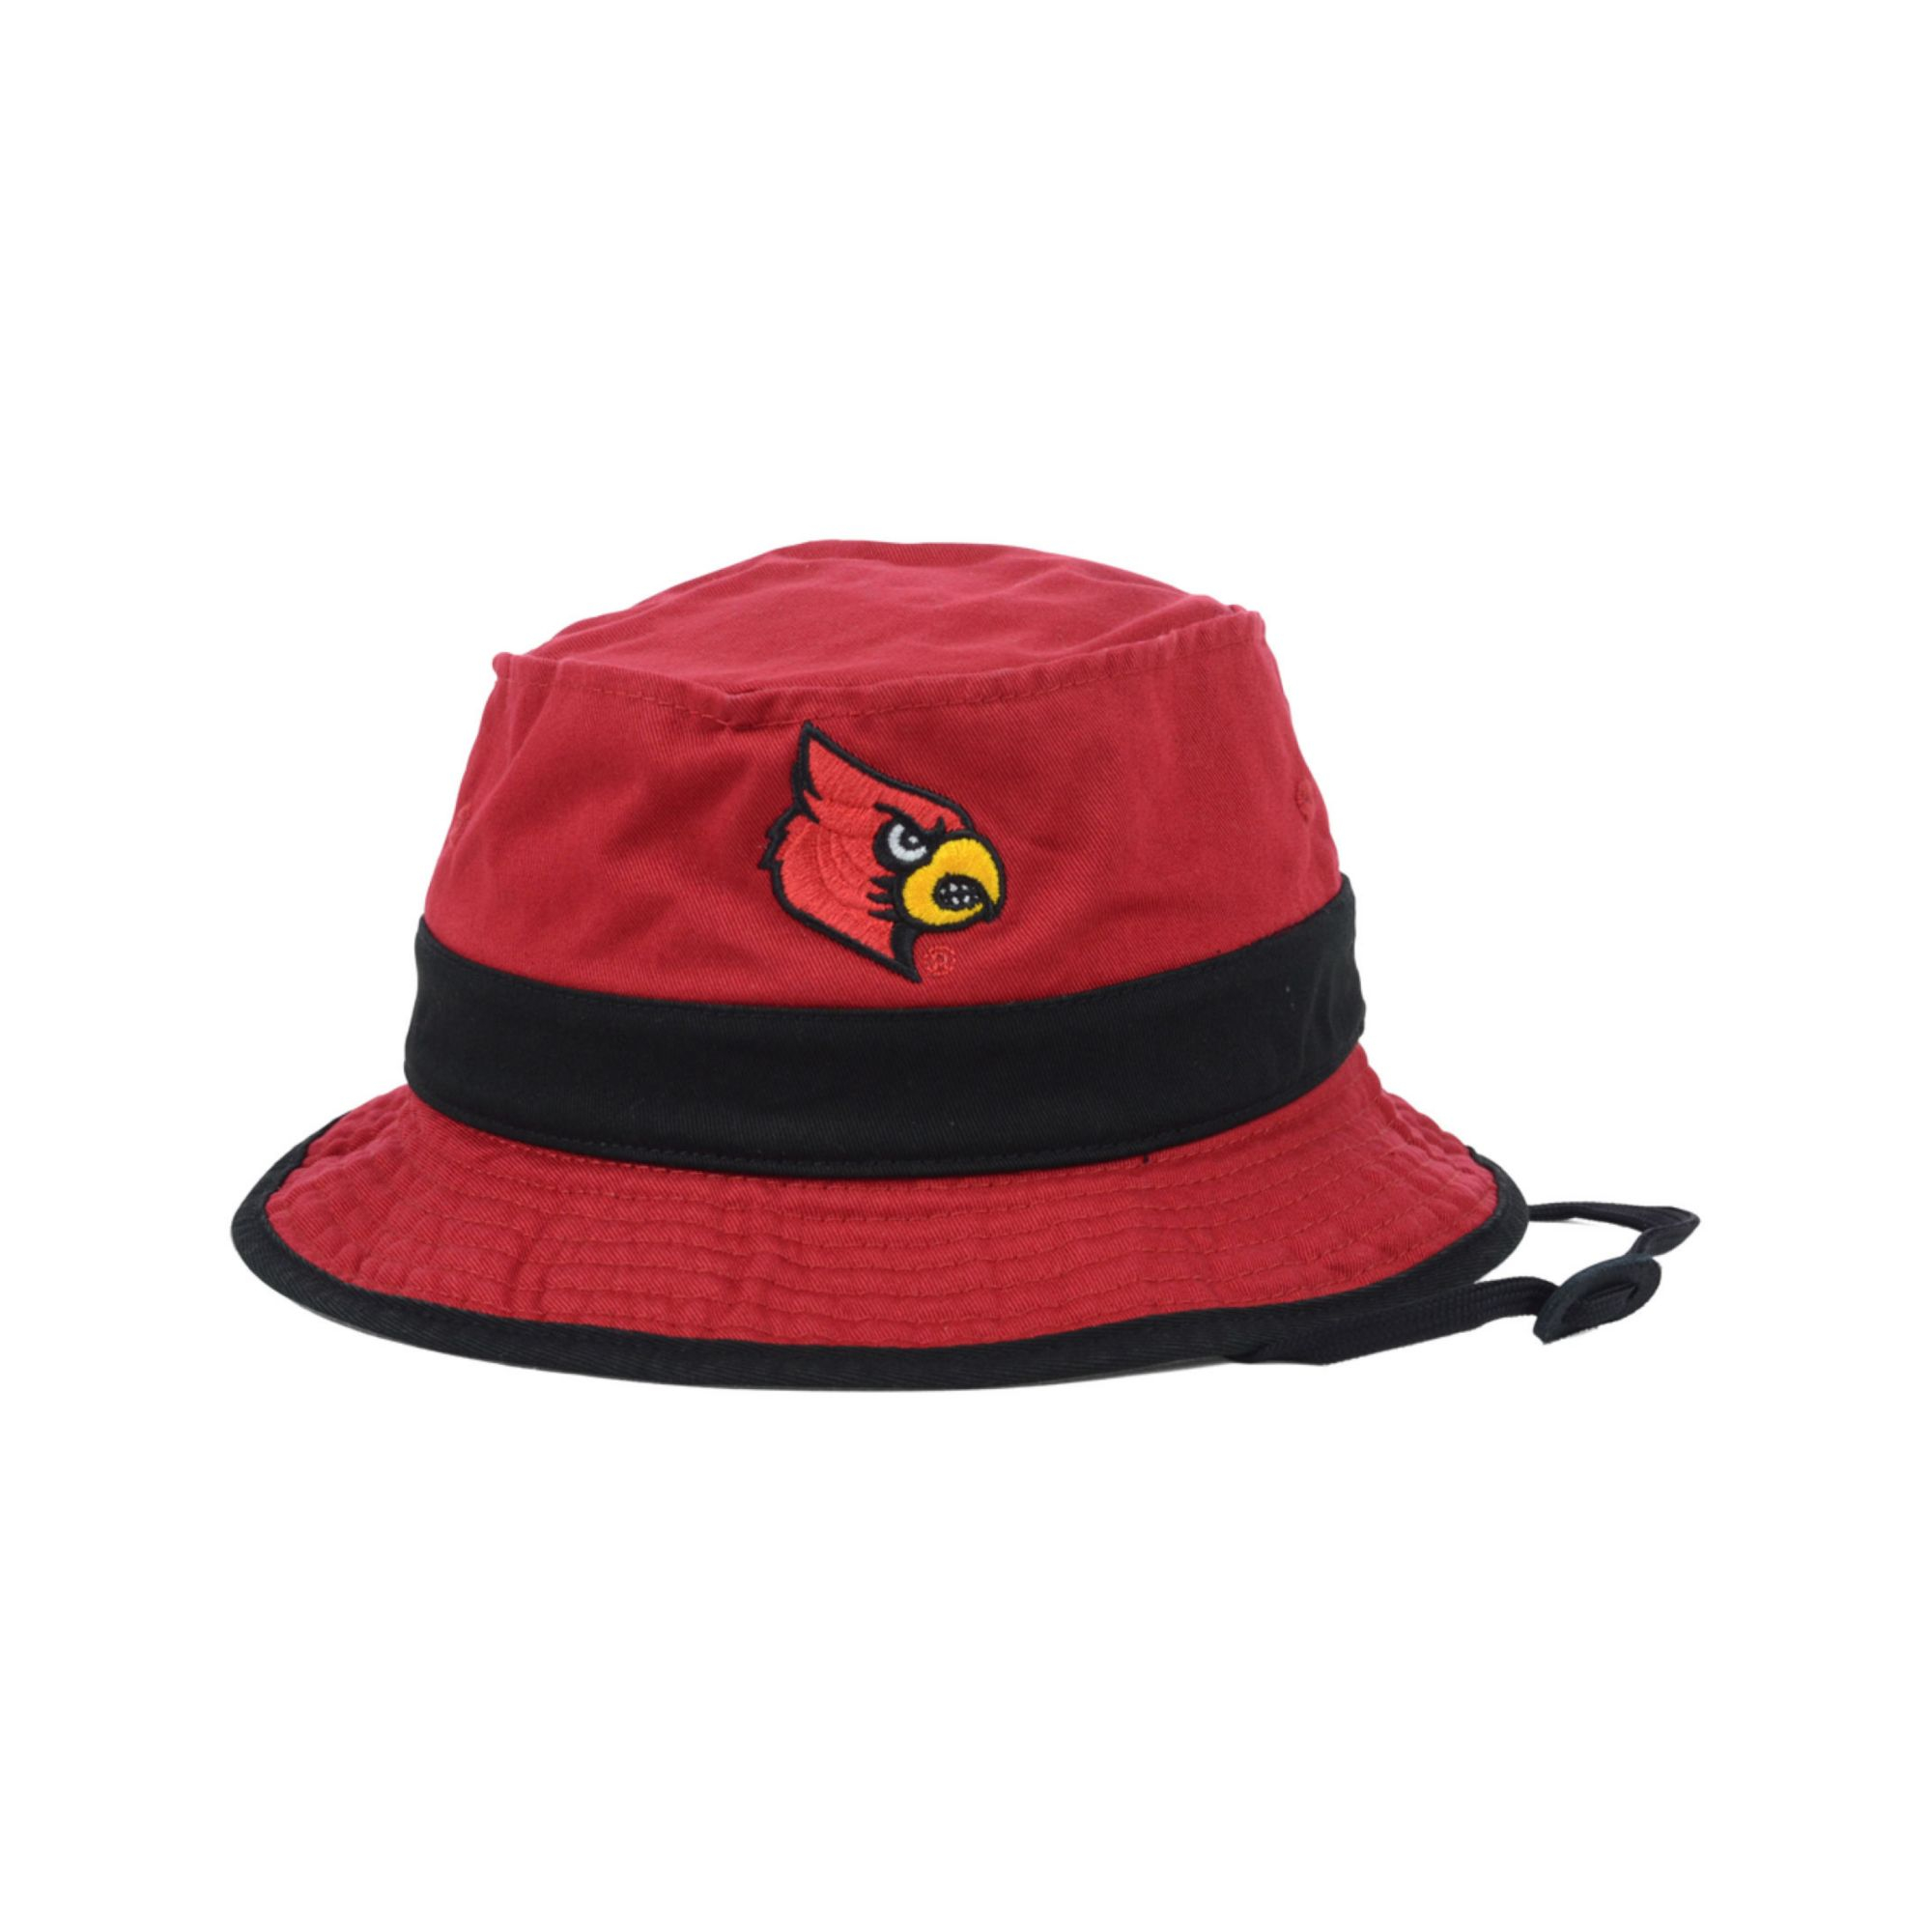 Lyst - adidas Louisville Cardinals Cord Bucket Hat in Red for Men 8449eea60